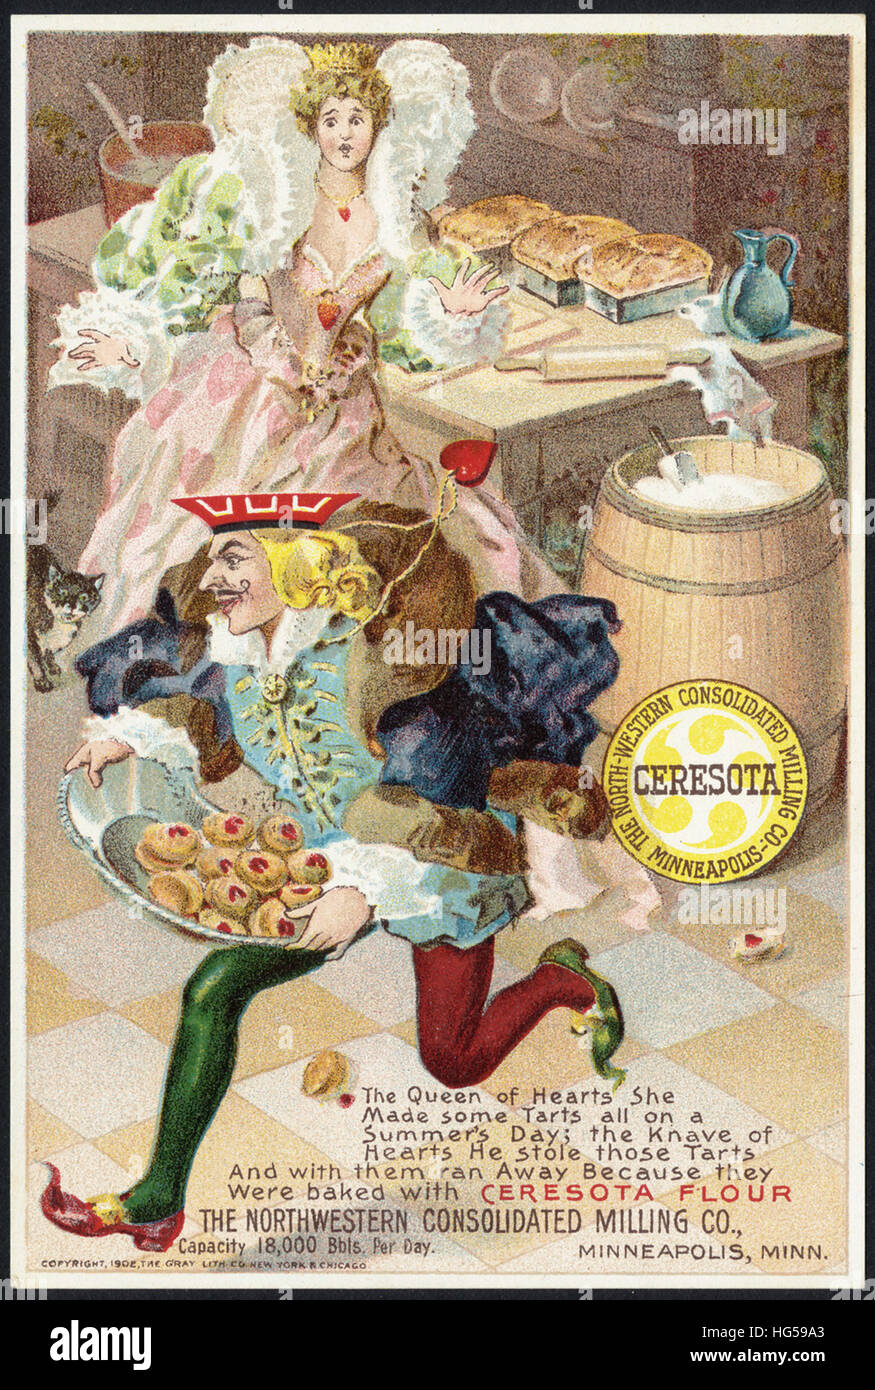 Baking Trade Card -  The Queen of Hearts she made some tarts all the summer's day - Stock Image